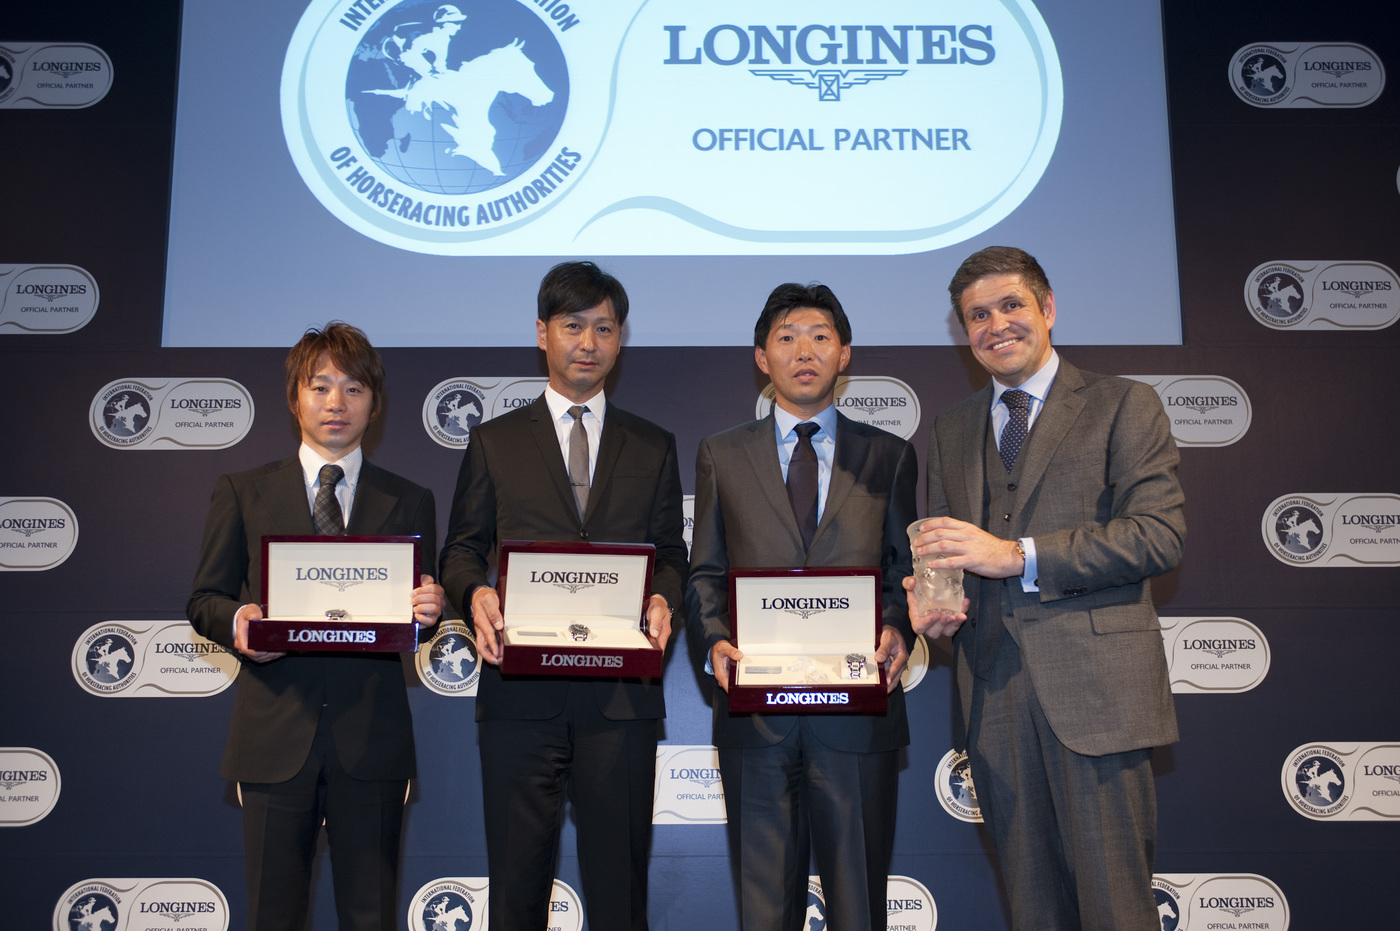 Longines Flat Racing Event: Longines and the International Federation of Horseracing Authorities (IFHA) honoured ORFEVRE as the co-third highest-rated horse in the world for 2013 3